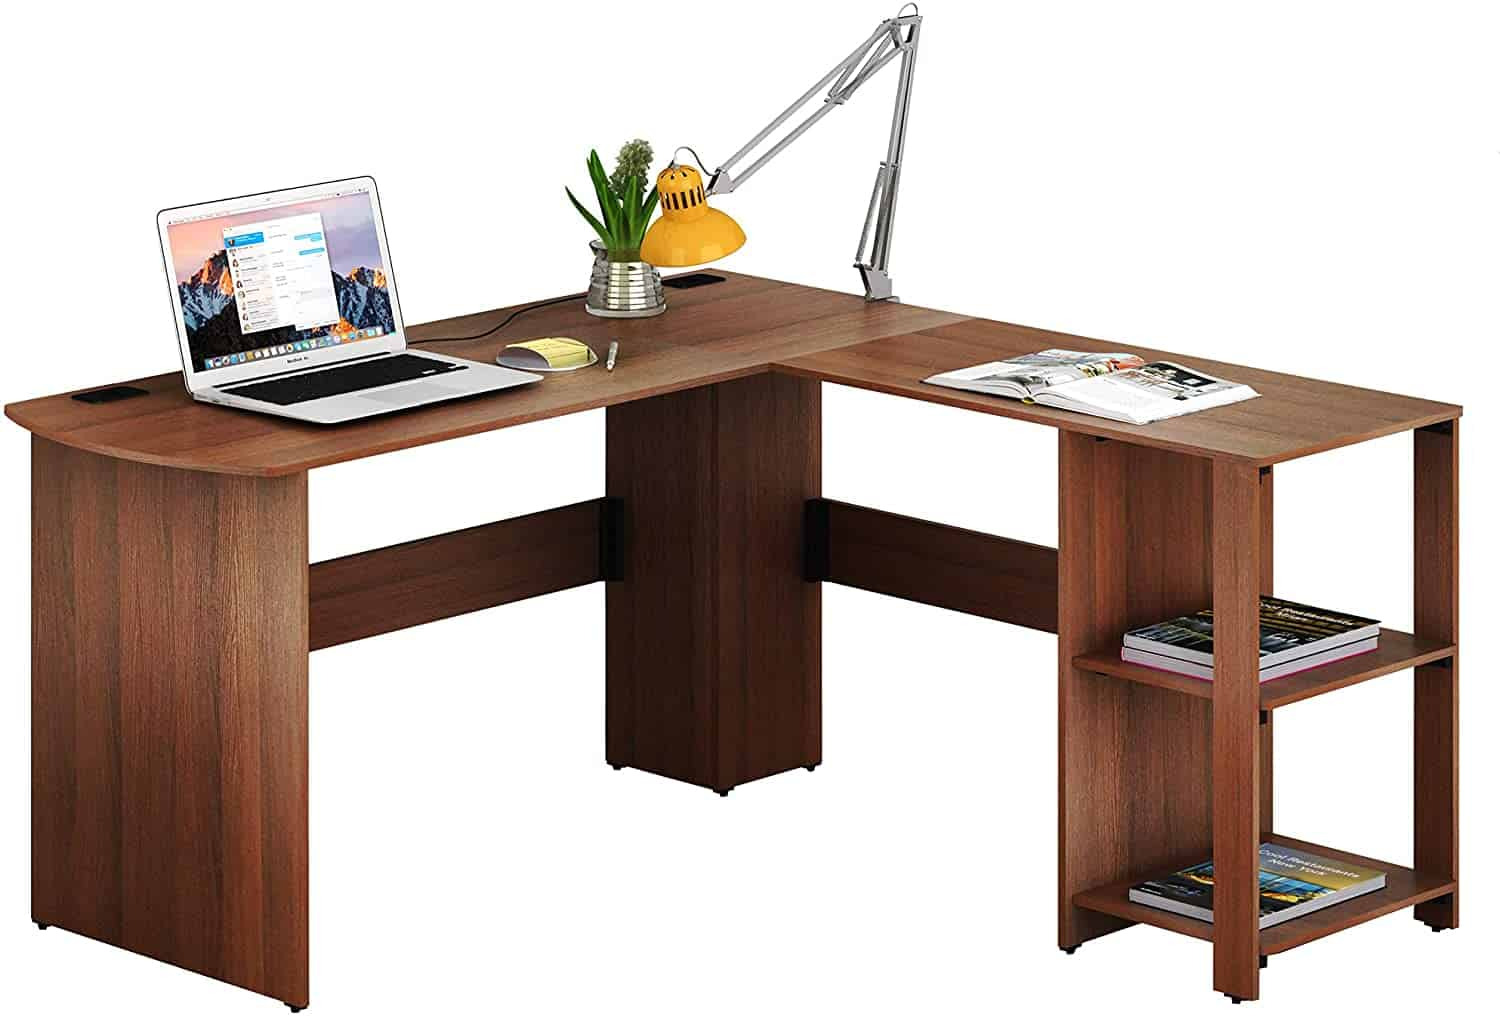 Top 43 Best Office Desks For Working From Home - May 43